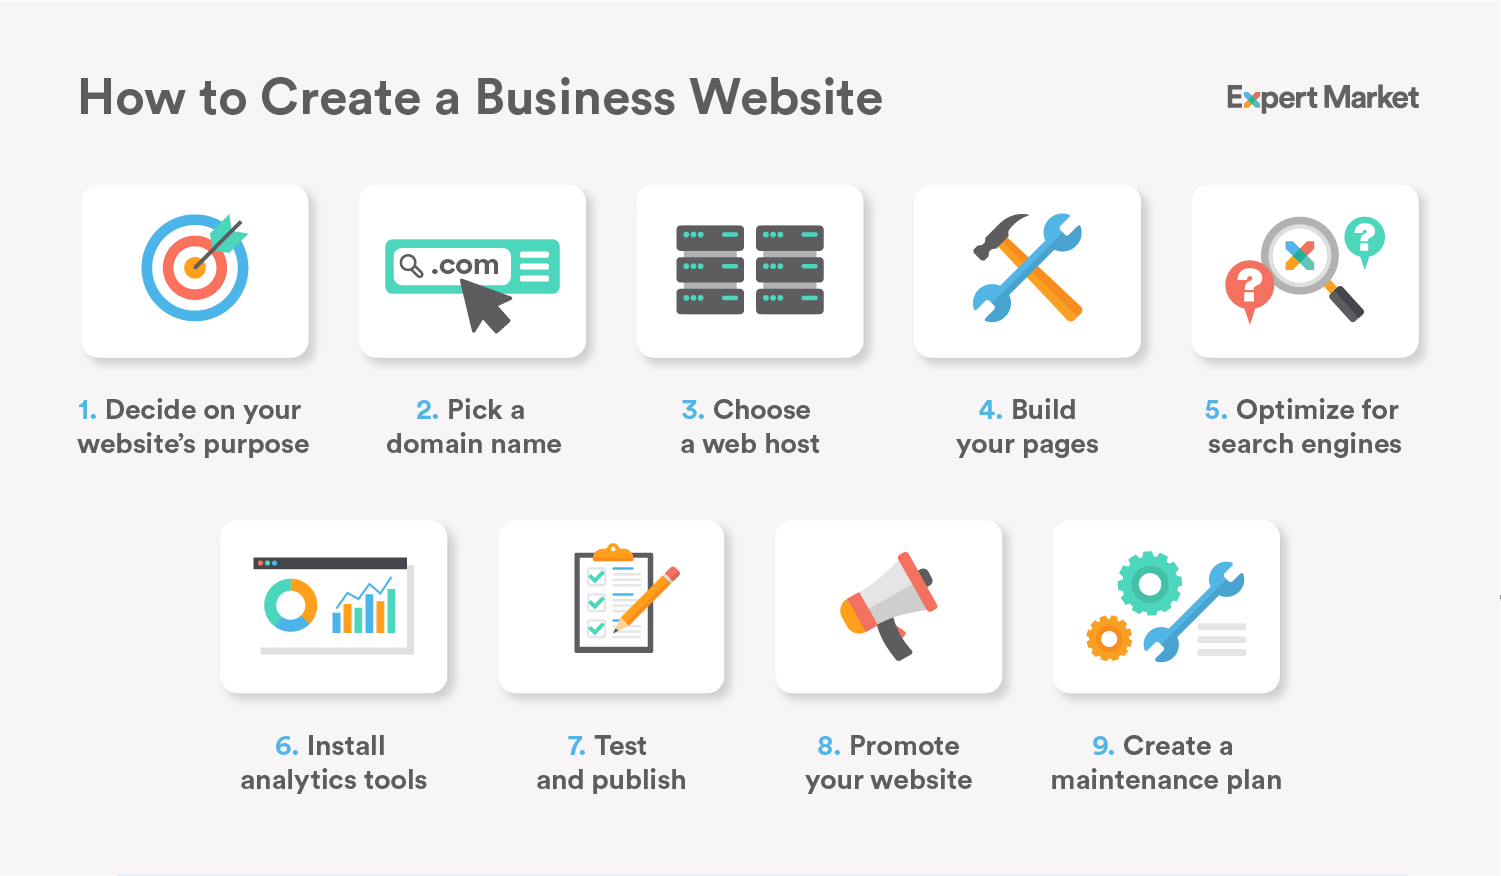 how to create a business website infographic